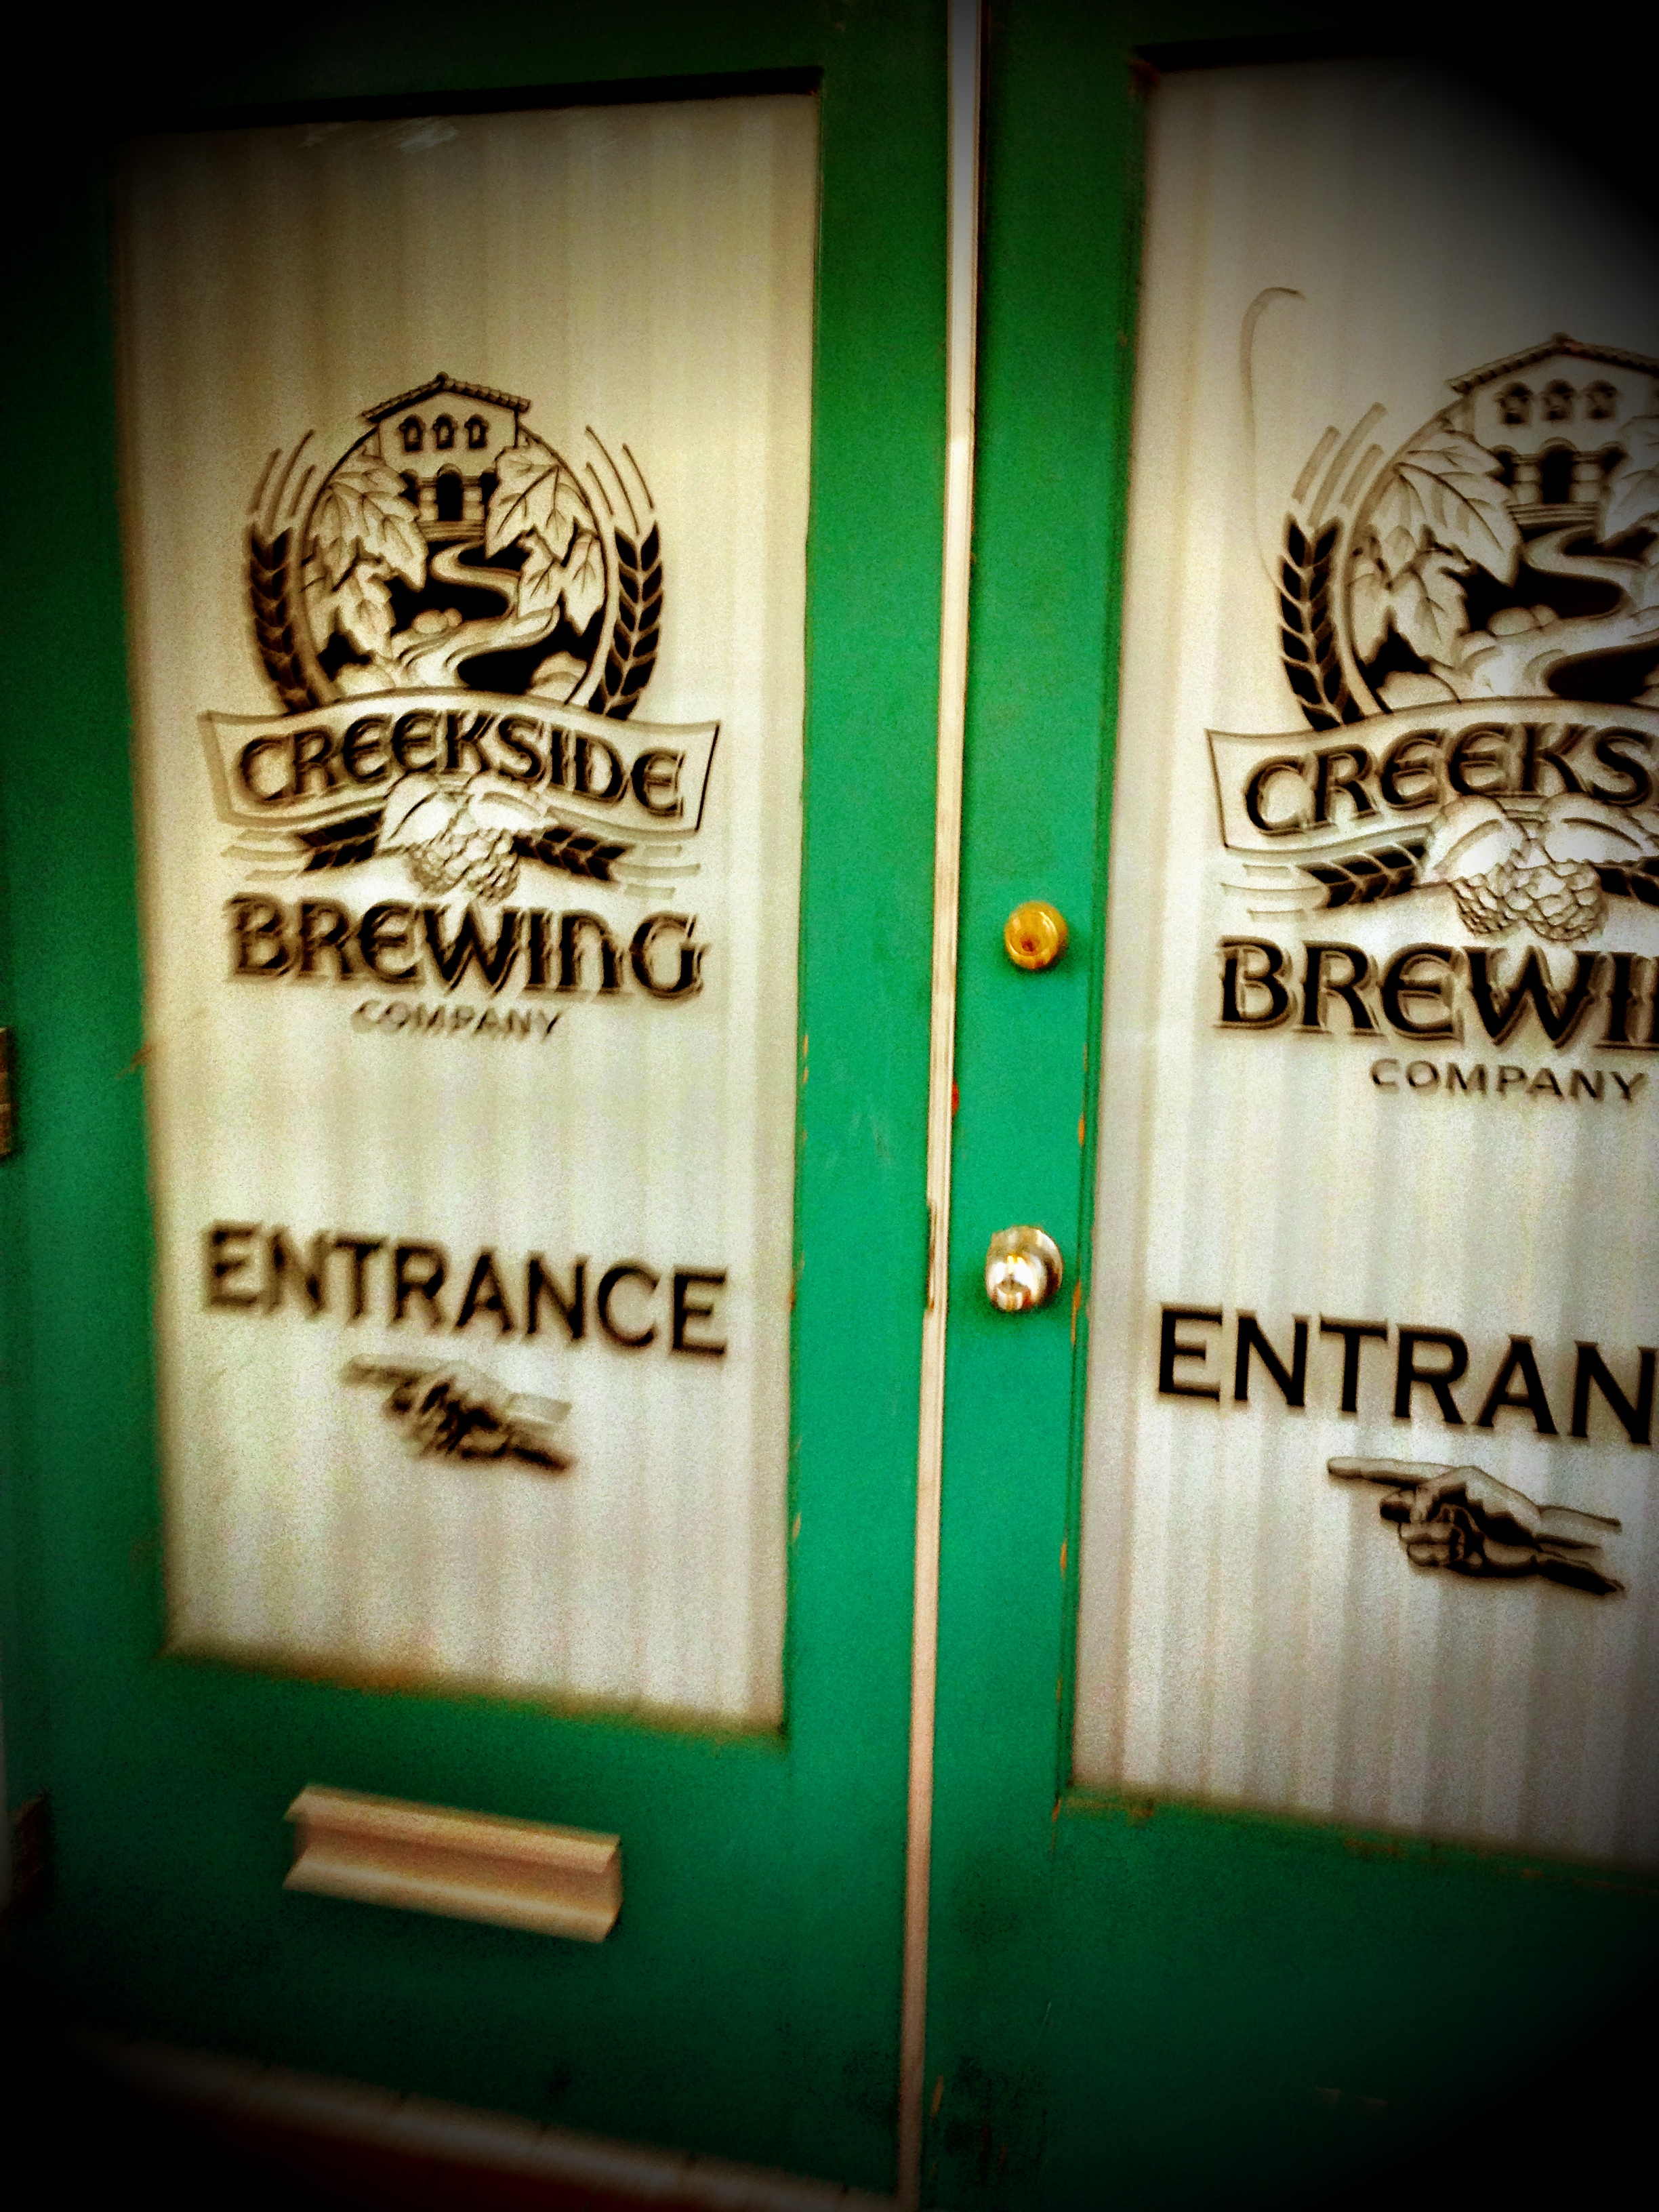 Creekside Brewing